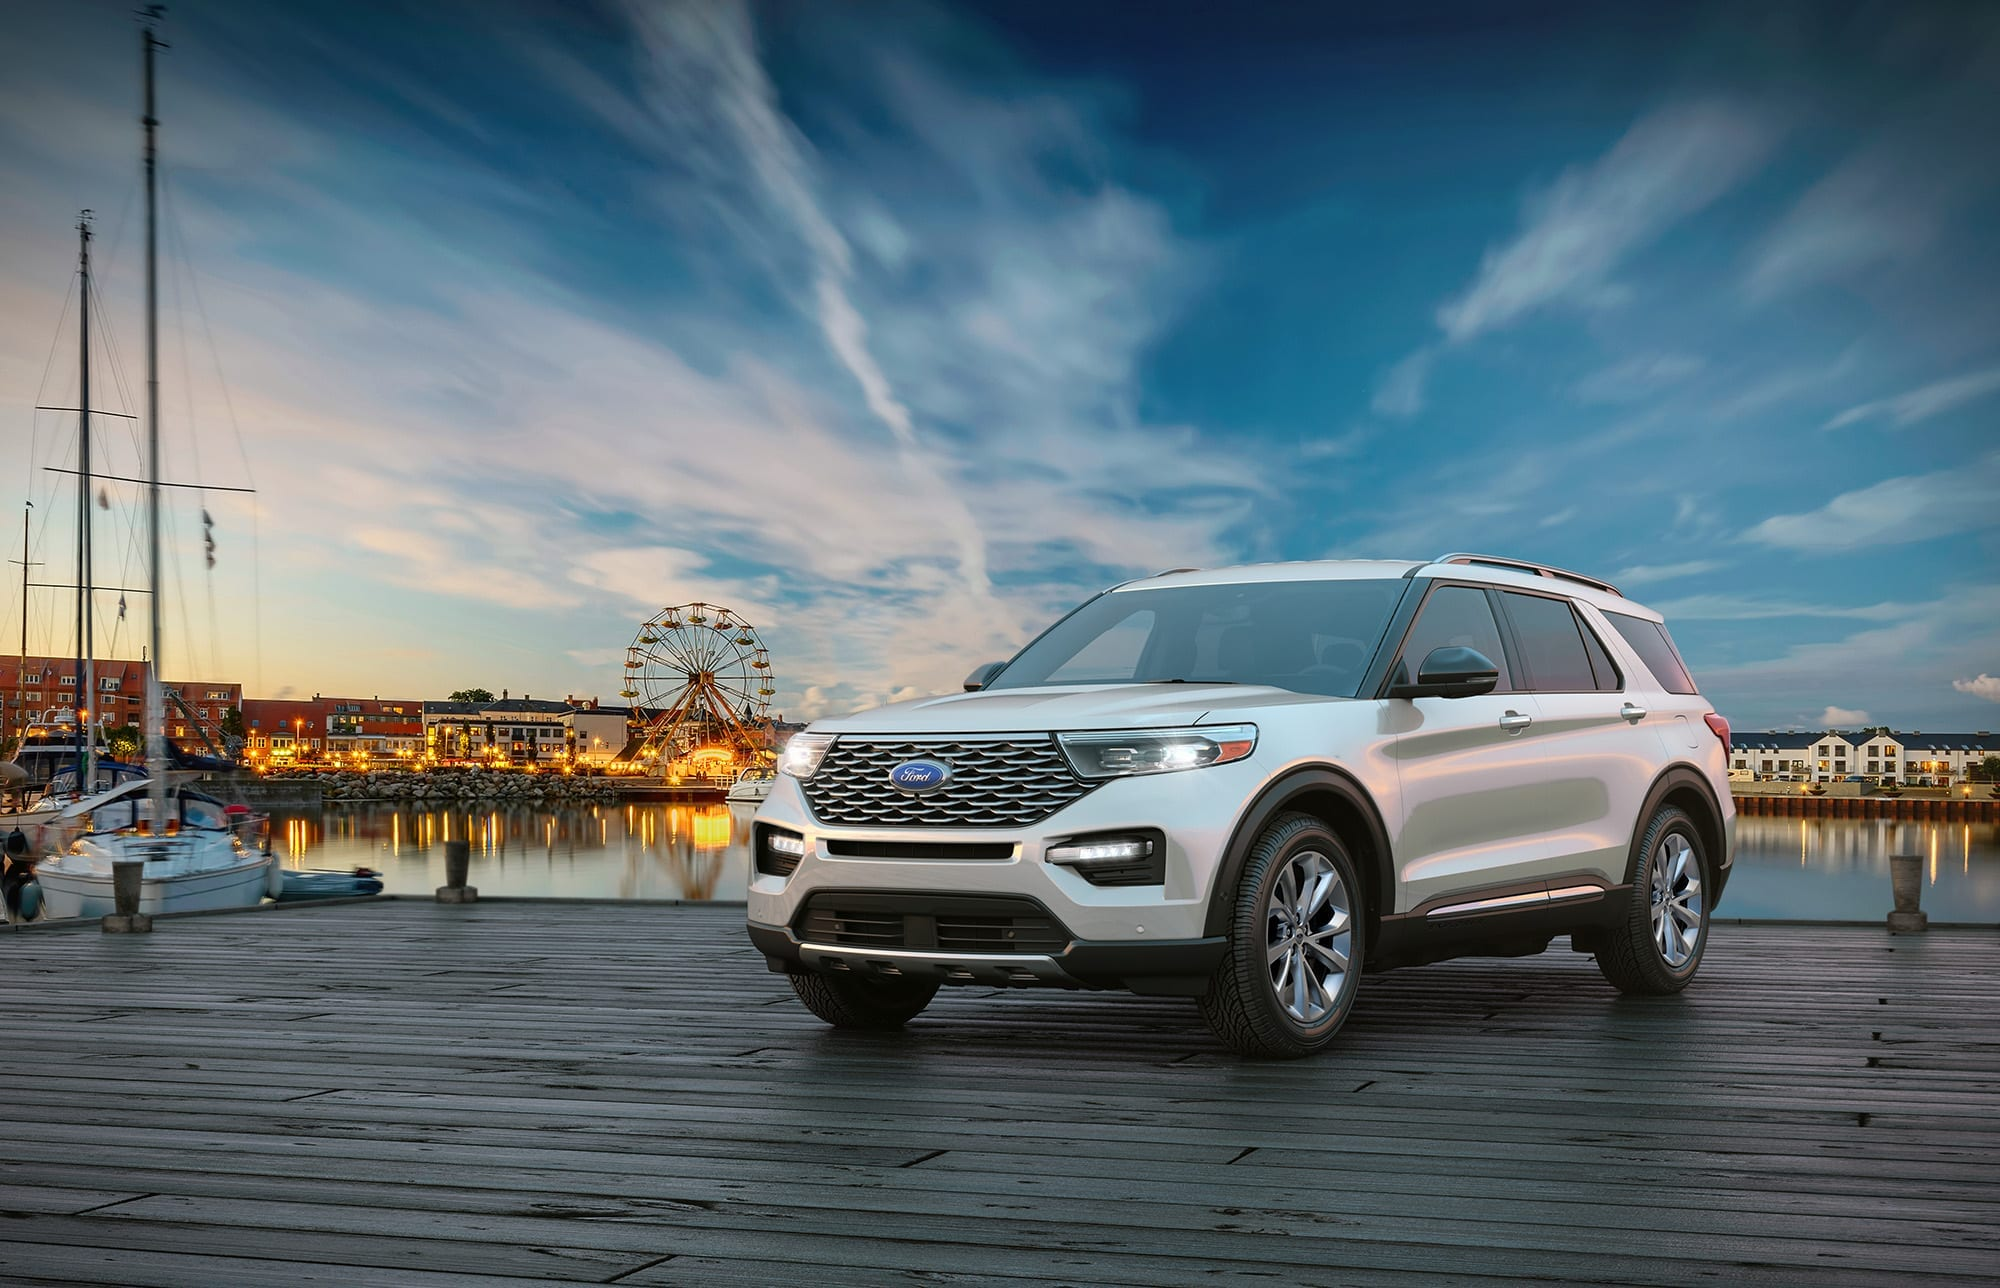 2021 Ford Explorer white front profile outdoor scene